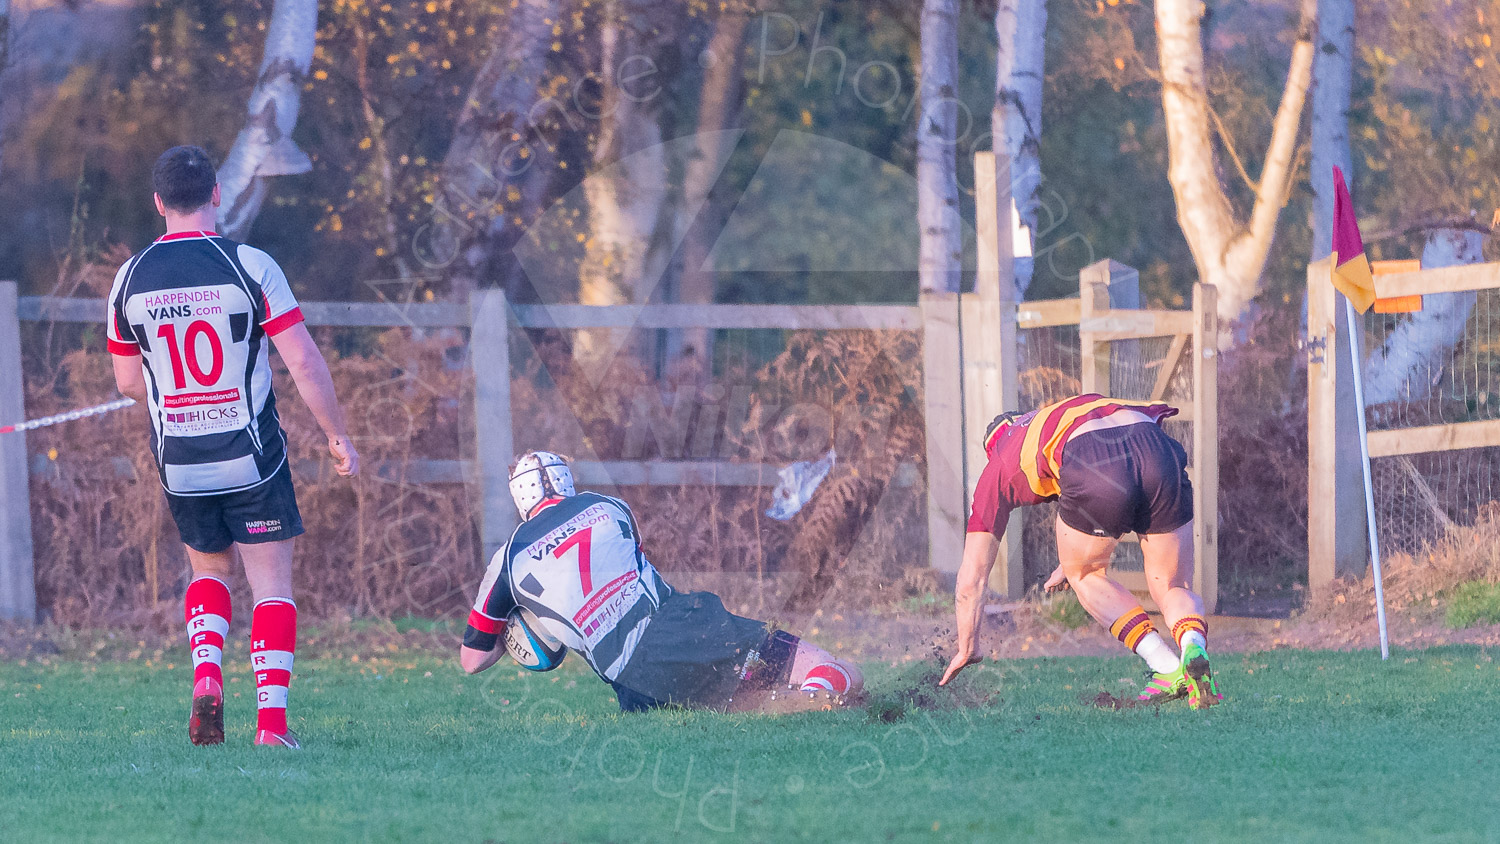 Showing they know how to do it, Harpenden #7 crosses the line! (Photo: Iain Frankish, Actuance Photography)